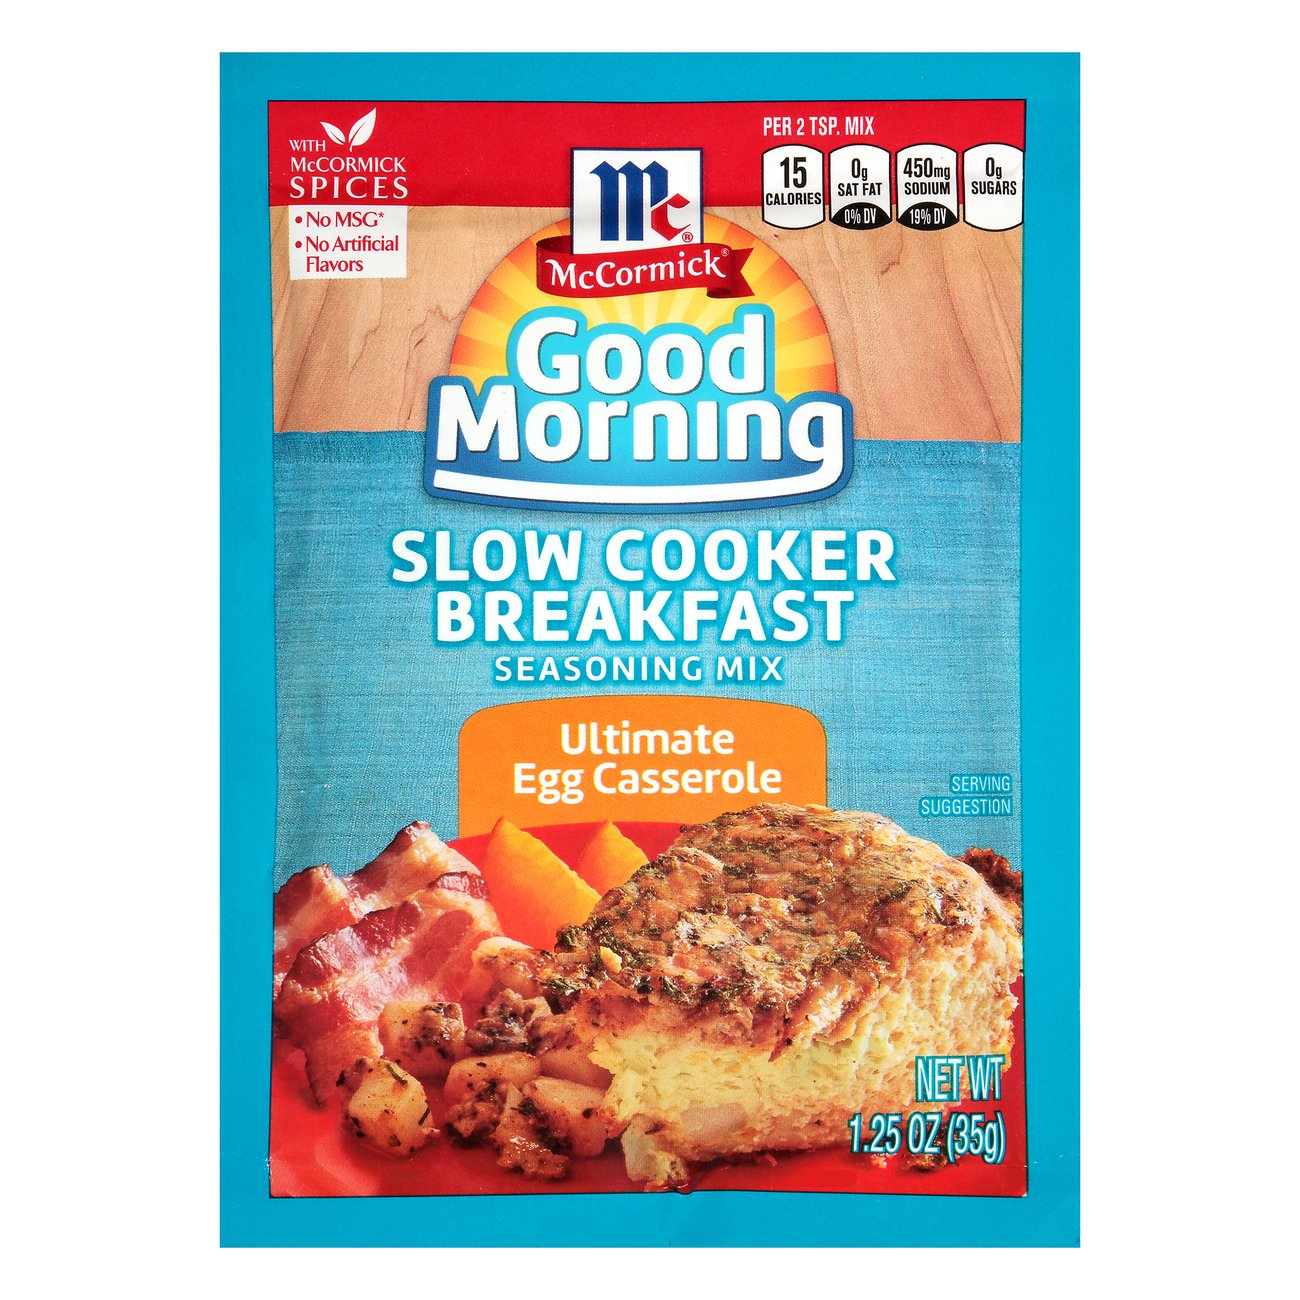 Mccormick Good Morning Slow Cooker Breakfast Ultimate Egg Casserole Shop Spice Mixes At H E B